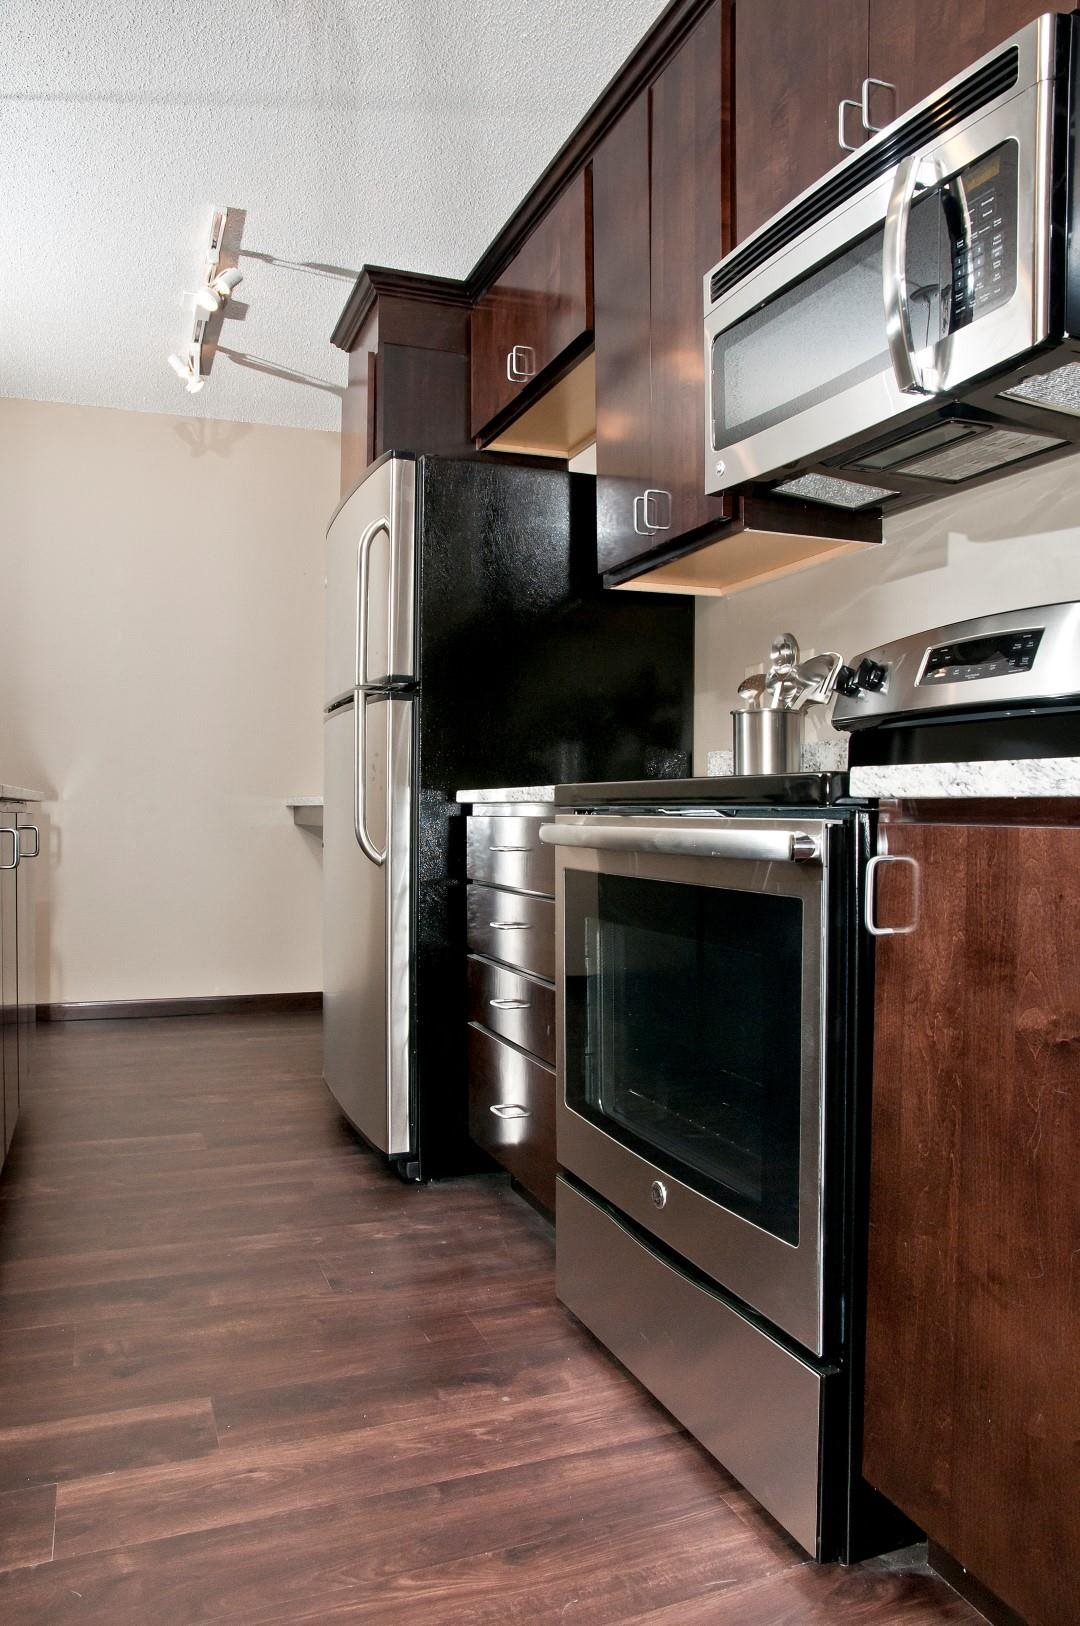 Stainless Steal Appliances in Kitchen of Unit at 2800 Girard